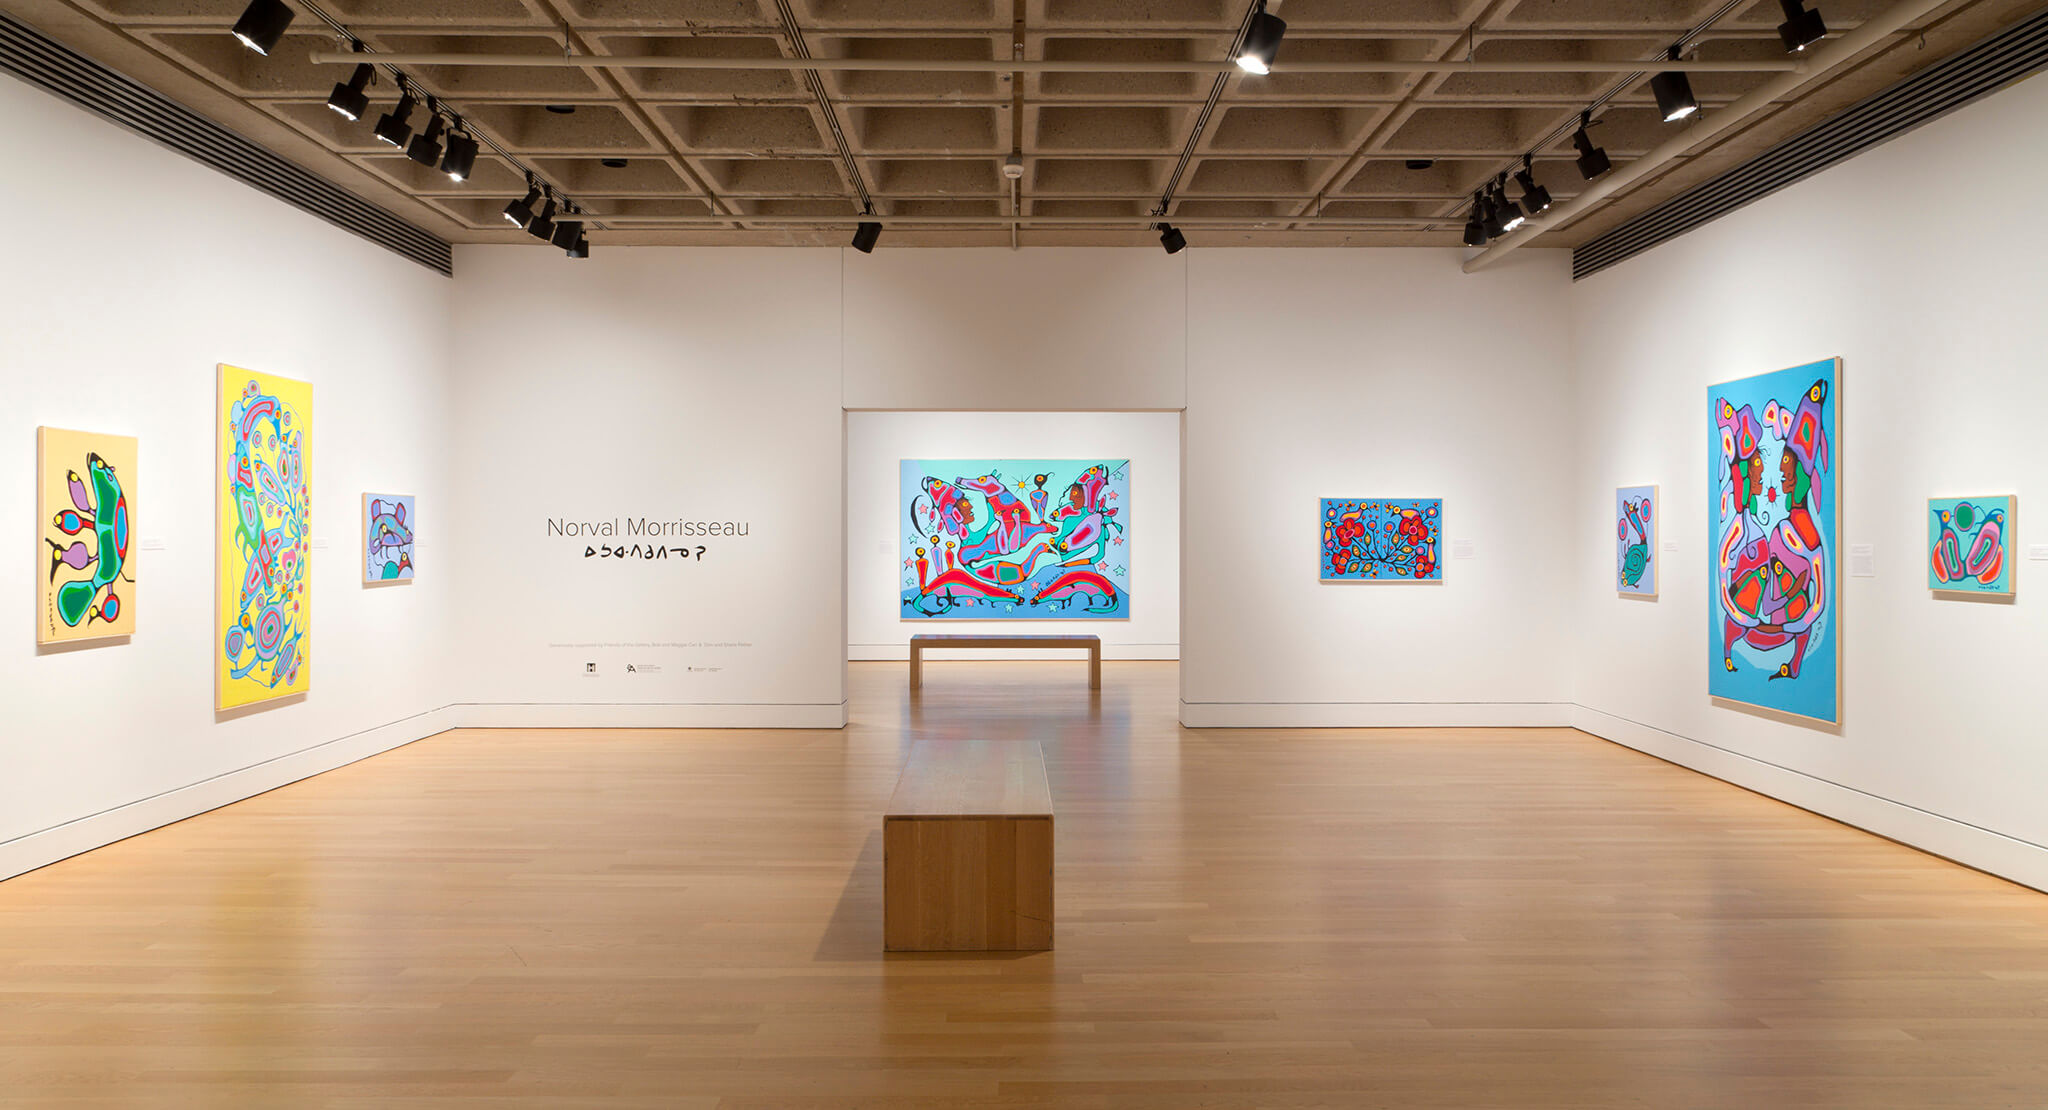 The Four R's of Morrisseau